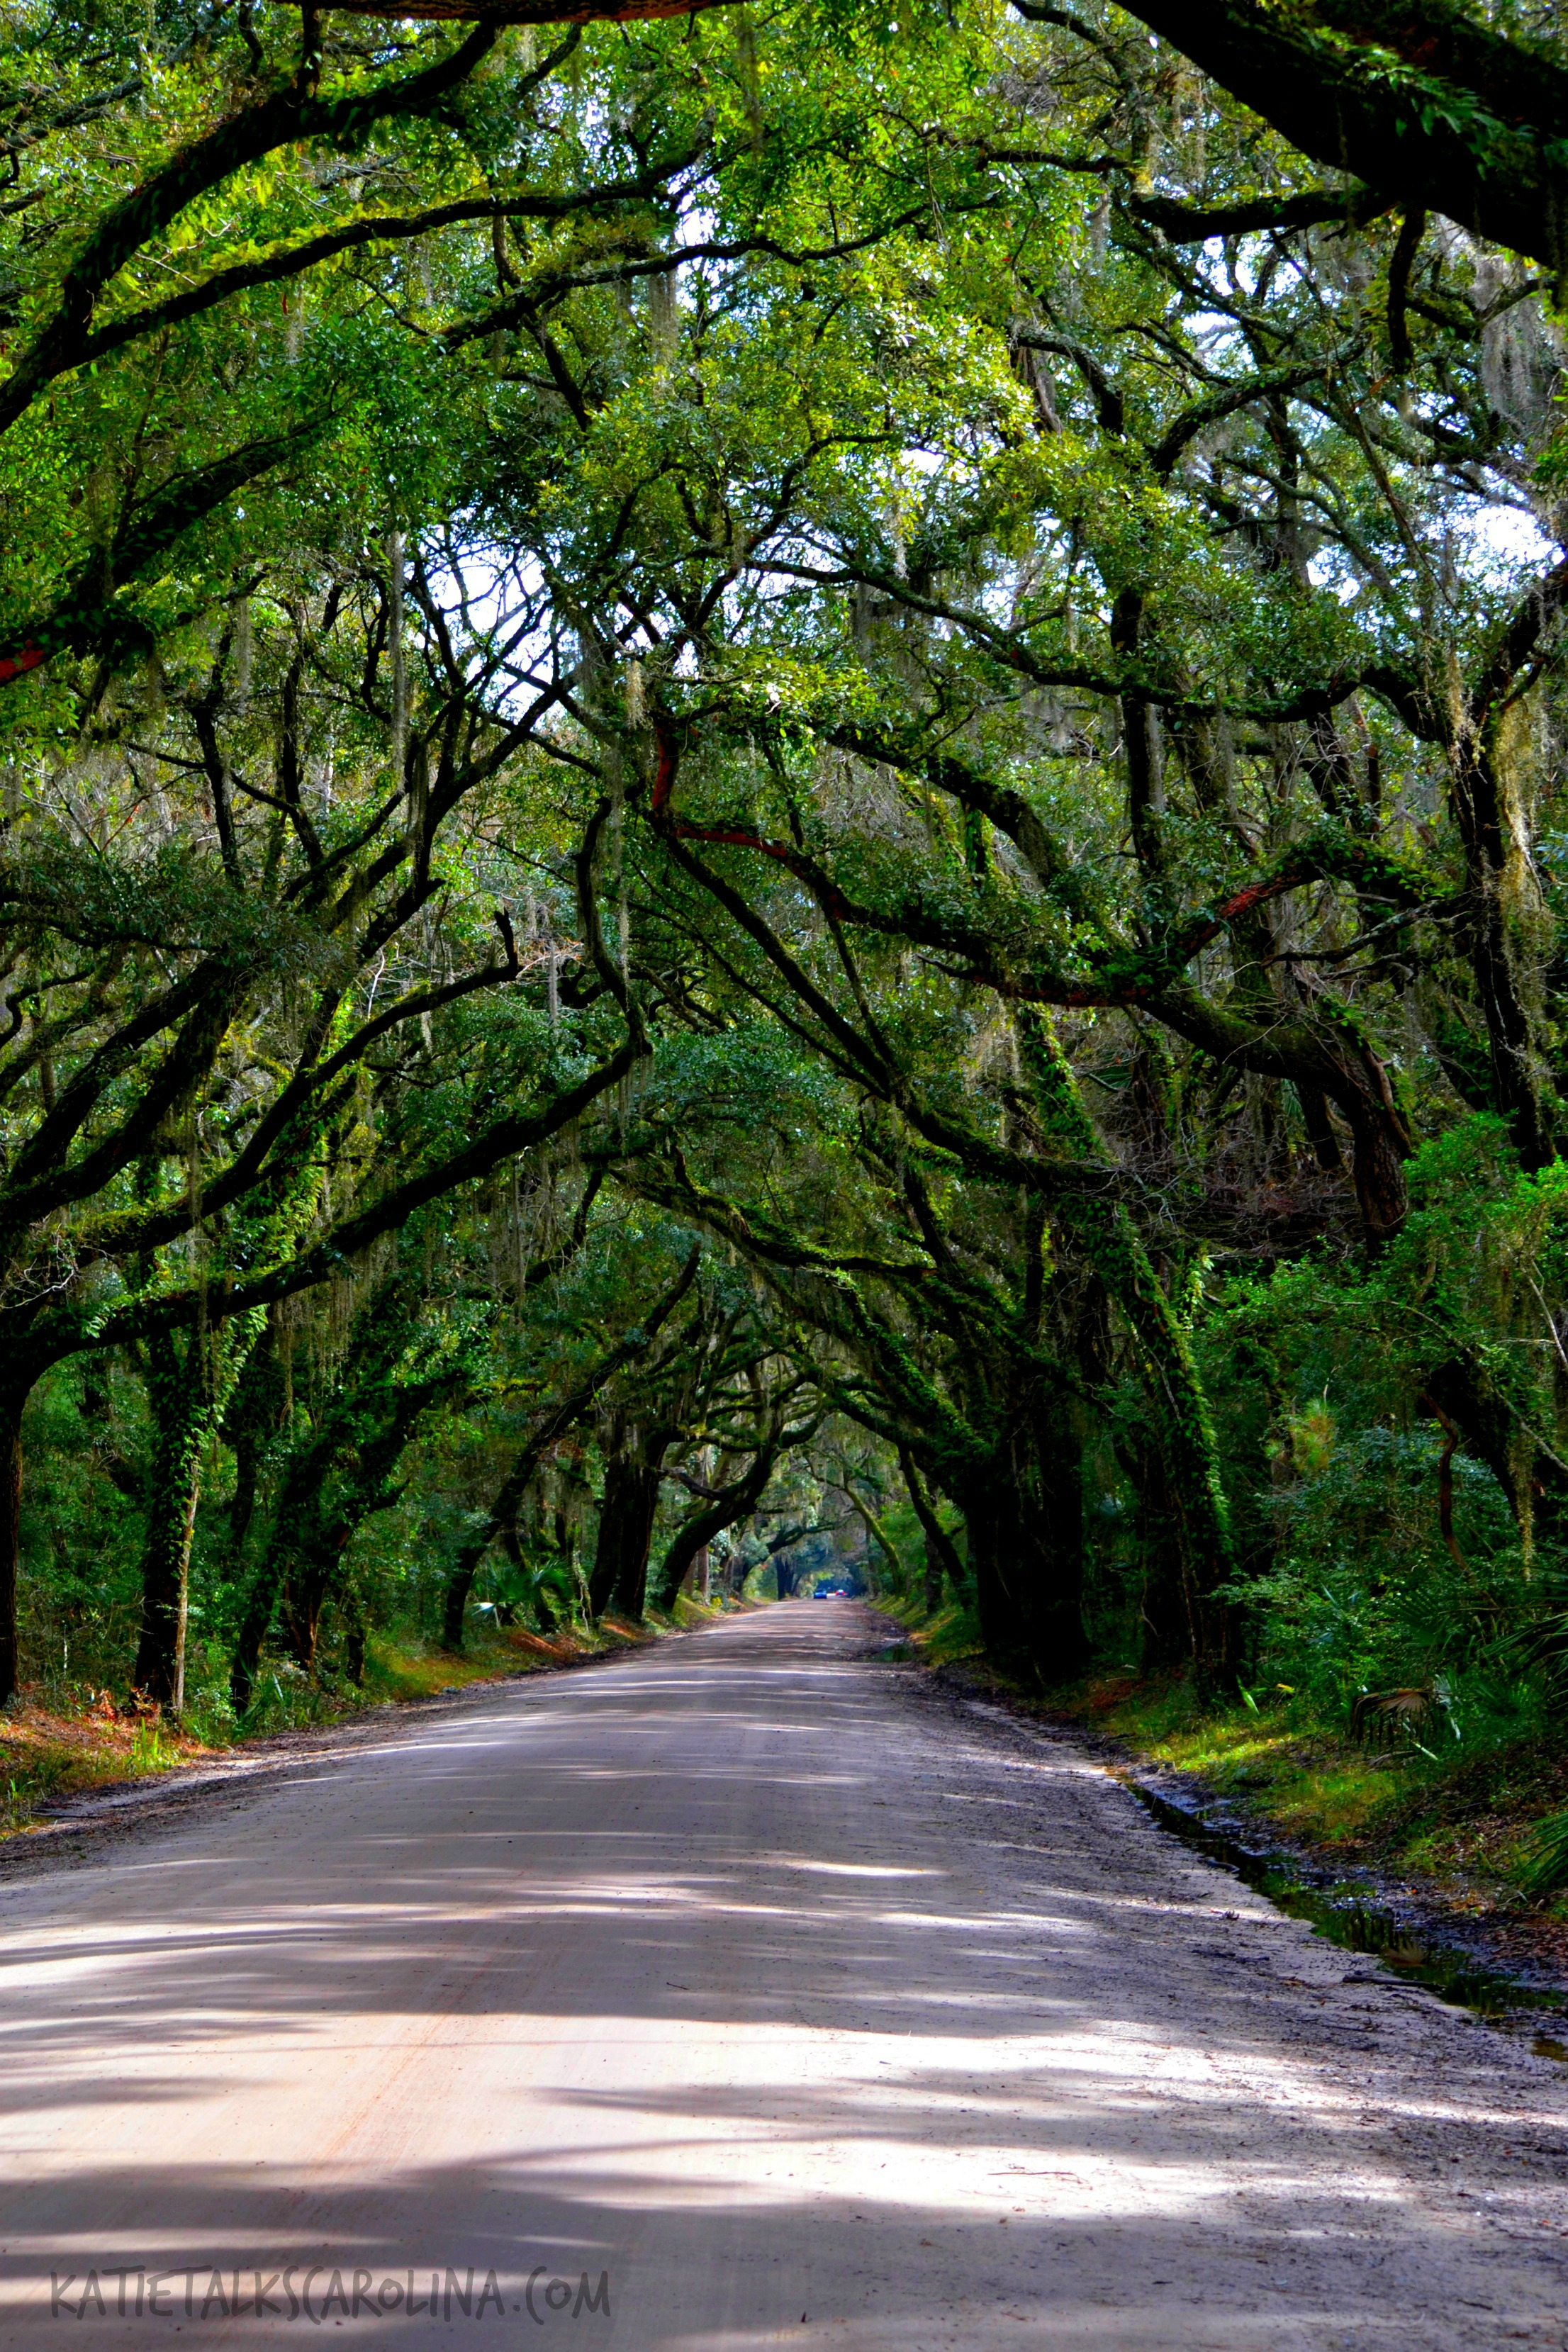 Botany Bay on Edisto Island in South Carolina